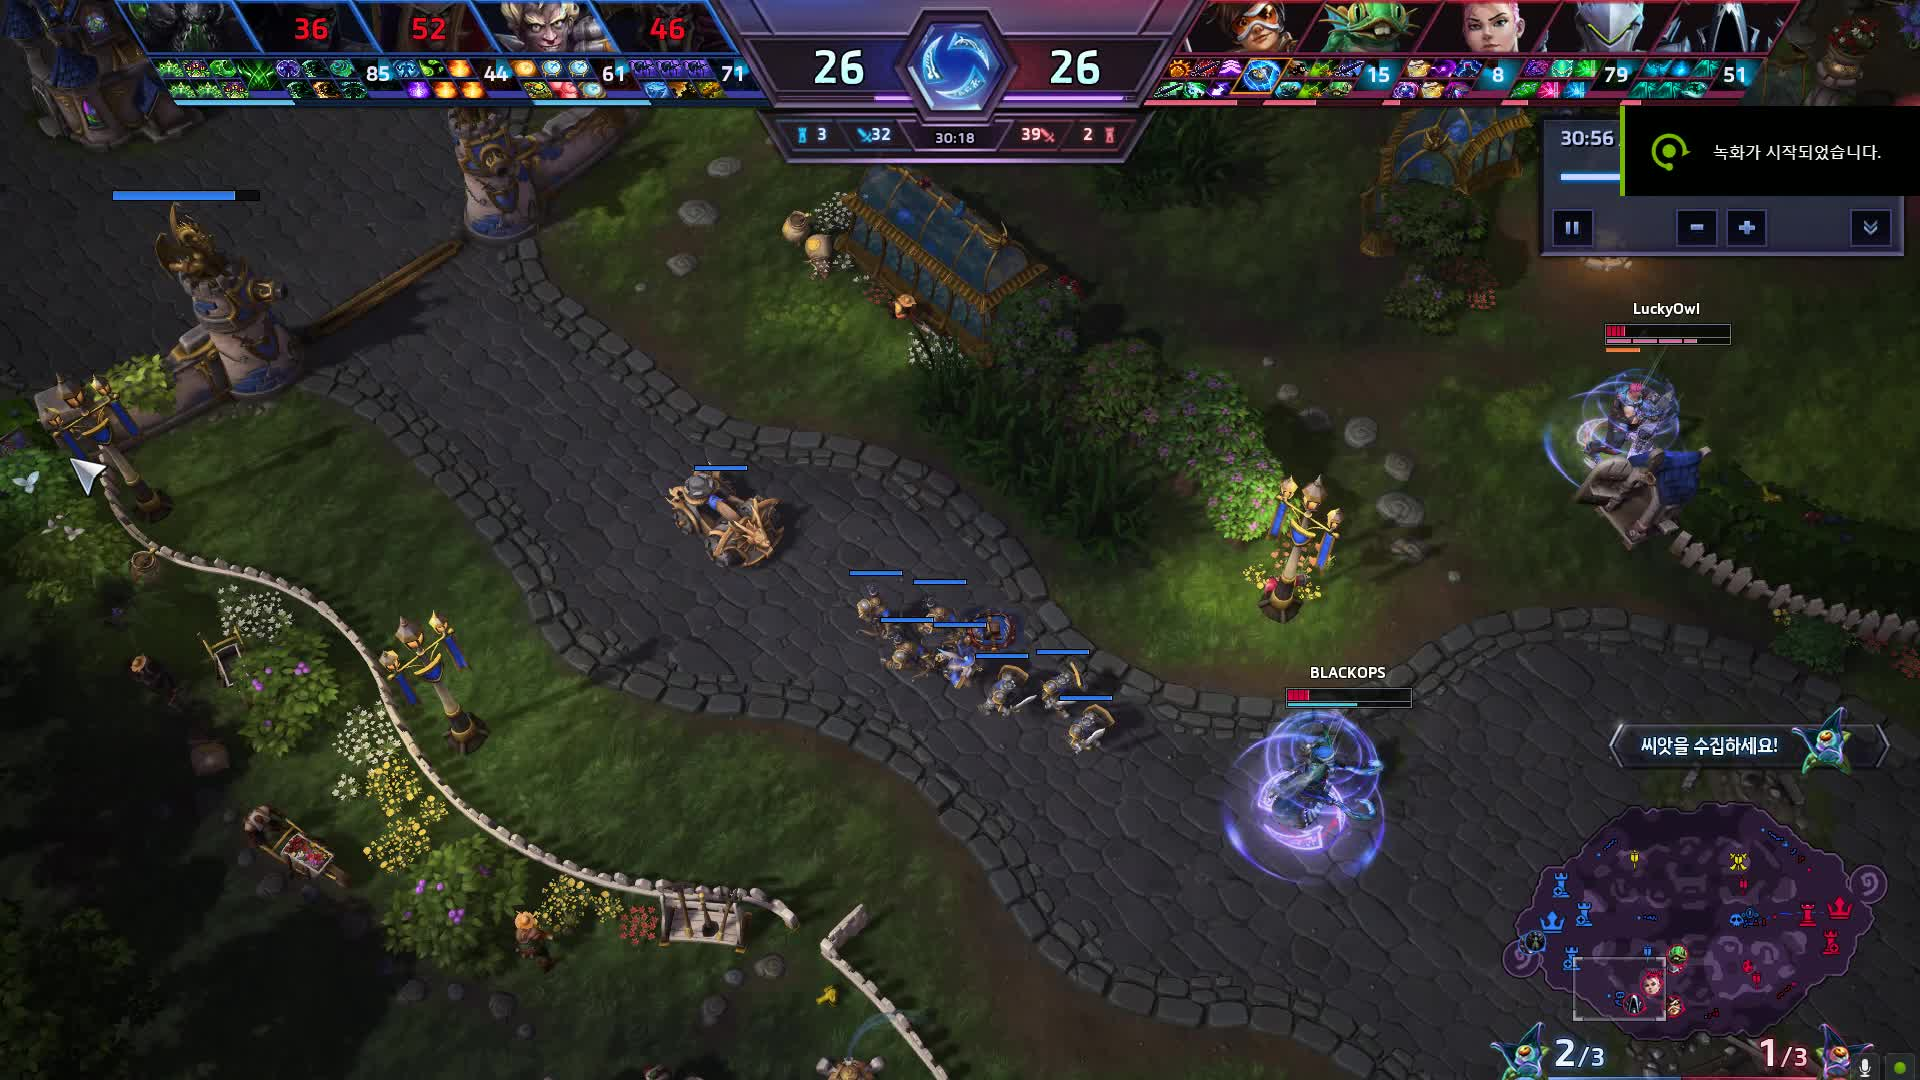 heroesofthestorm, Heroes of the Storm 2019.04.07 - 12.26.55.04 GIFs